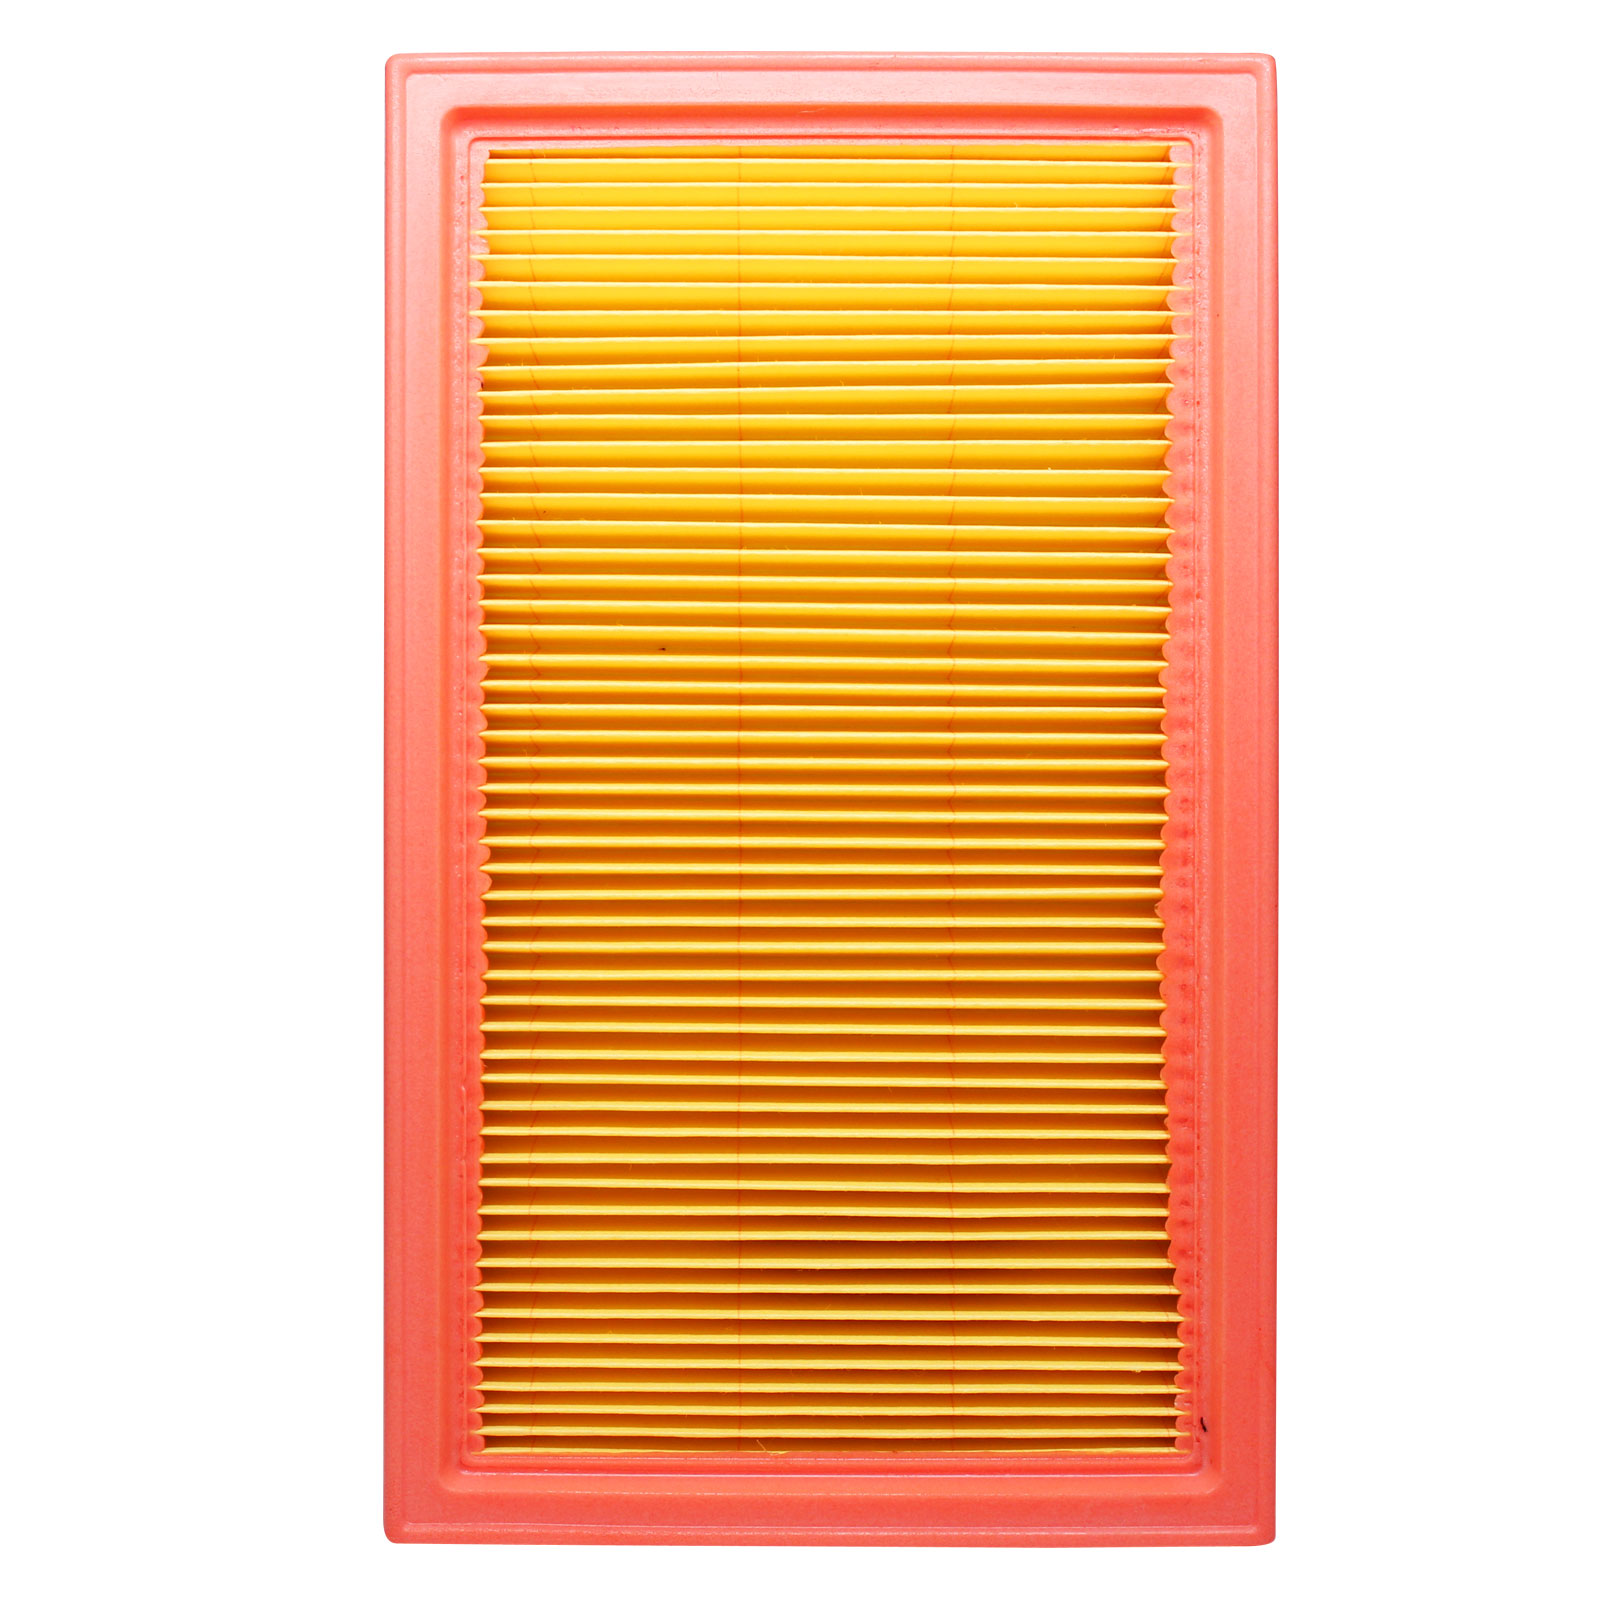 Nissan 27891-1FE0A 2x Cabin Air Filter for 2011-2017 Nissan Leaf